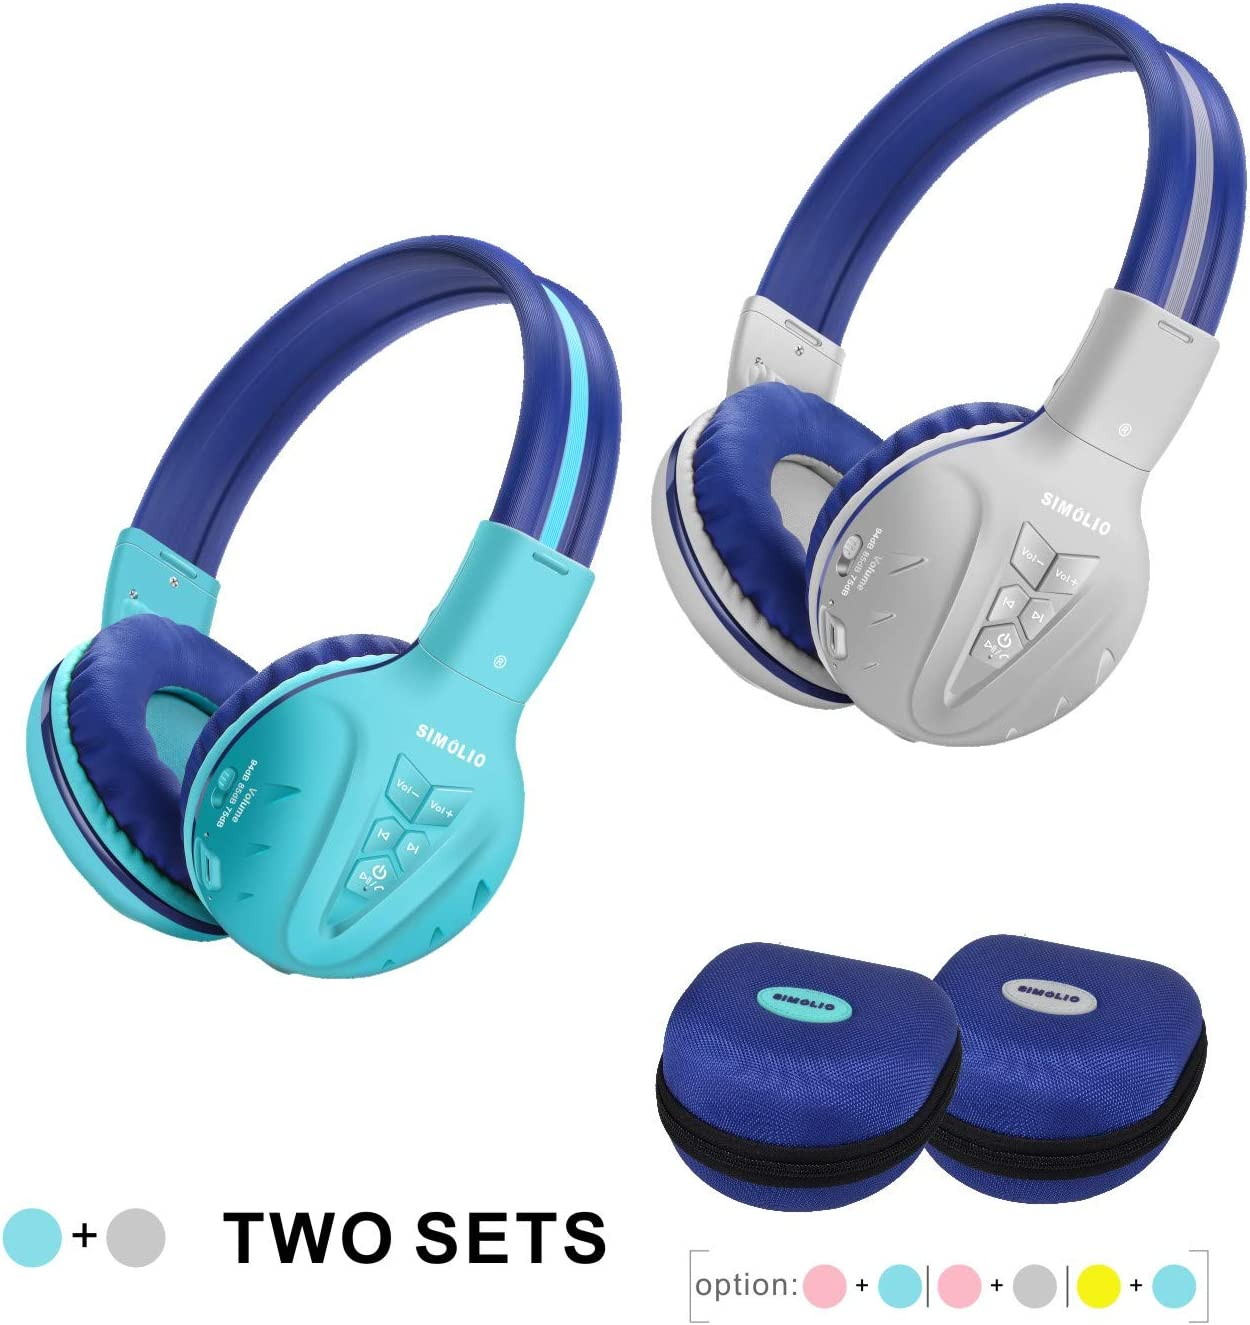 2 Pack of SIMOLIO Kids Bluetooth Headphones with Hearing Protection,Wireless Children Headphones,Kids Headphones for Boys,Girls, Wireless Kids Headphone with EVA case for School and Travel (Grey,Mint)